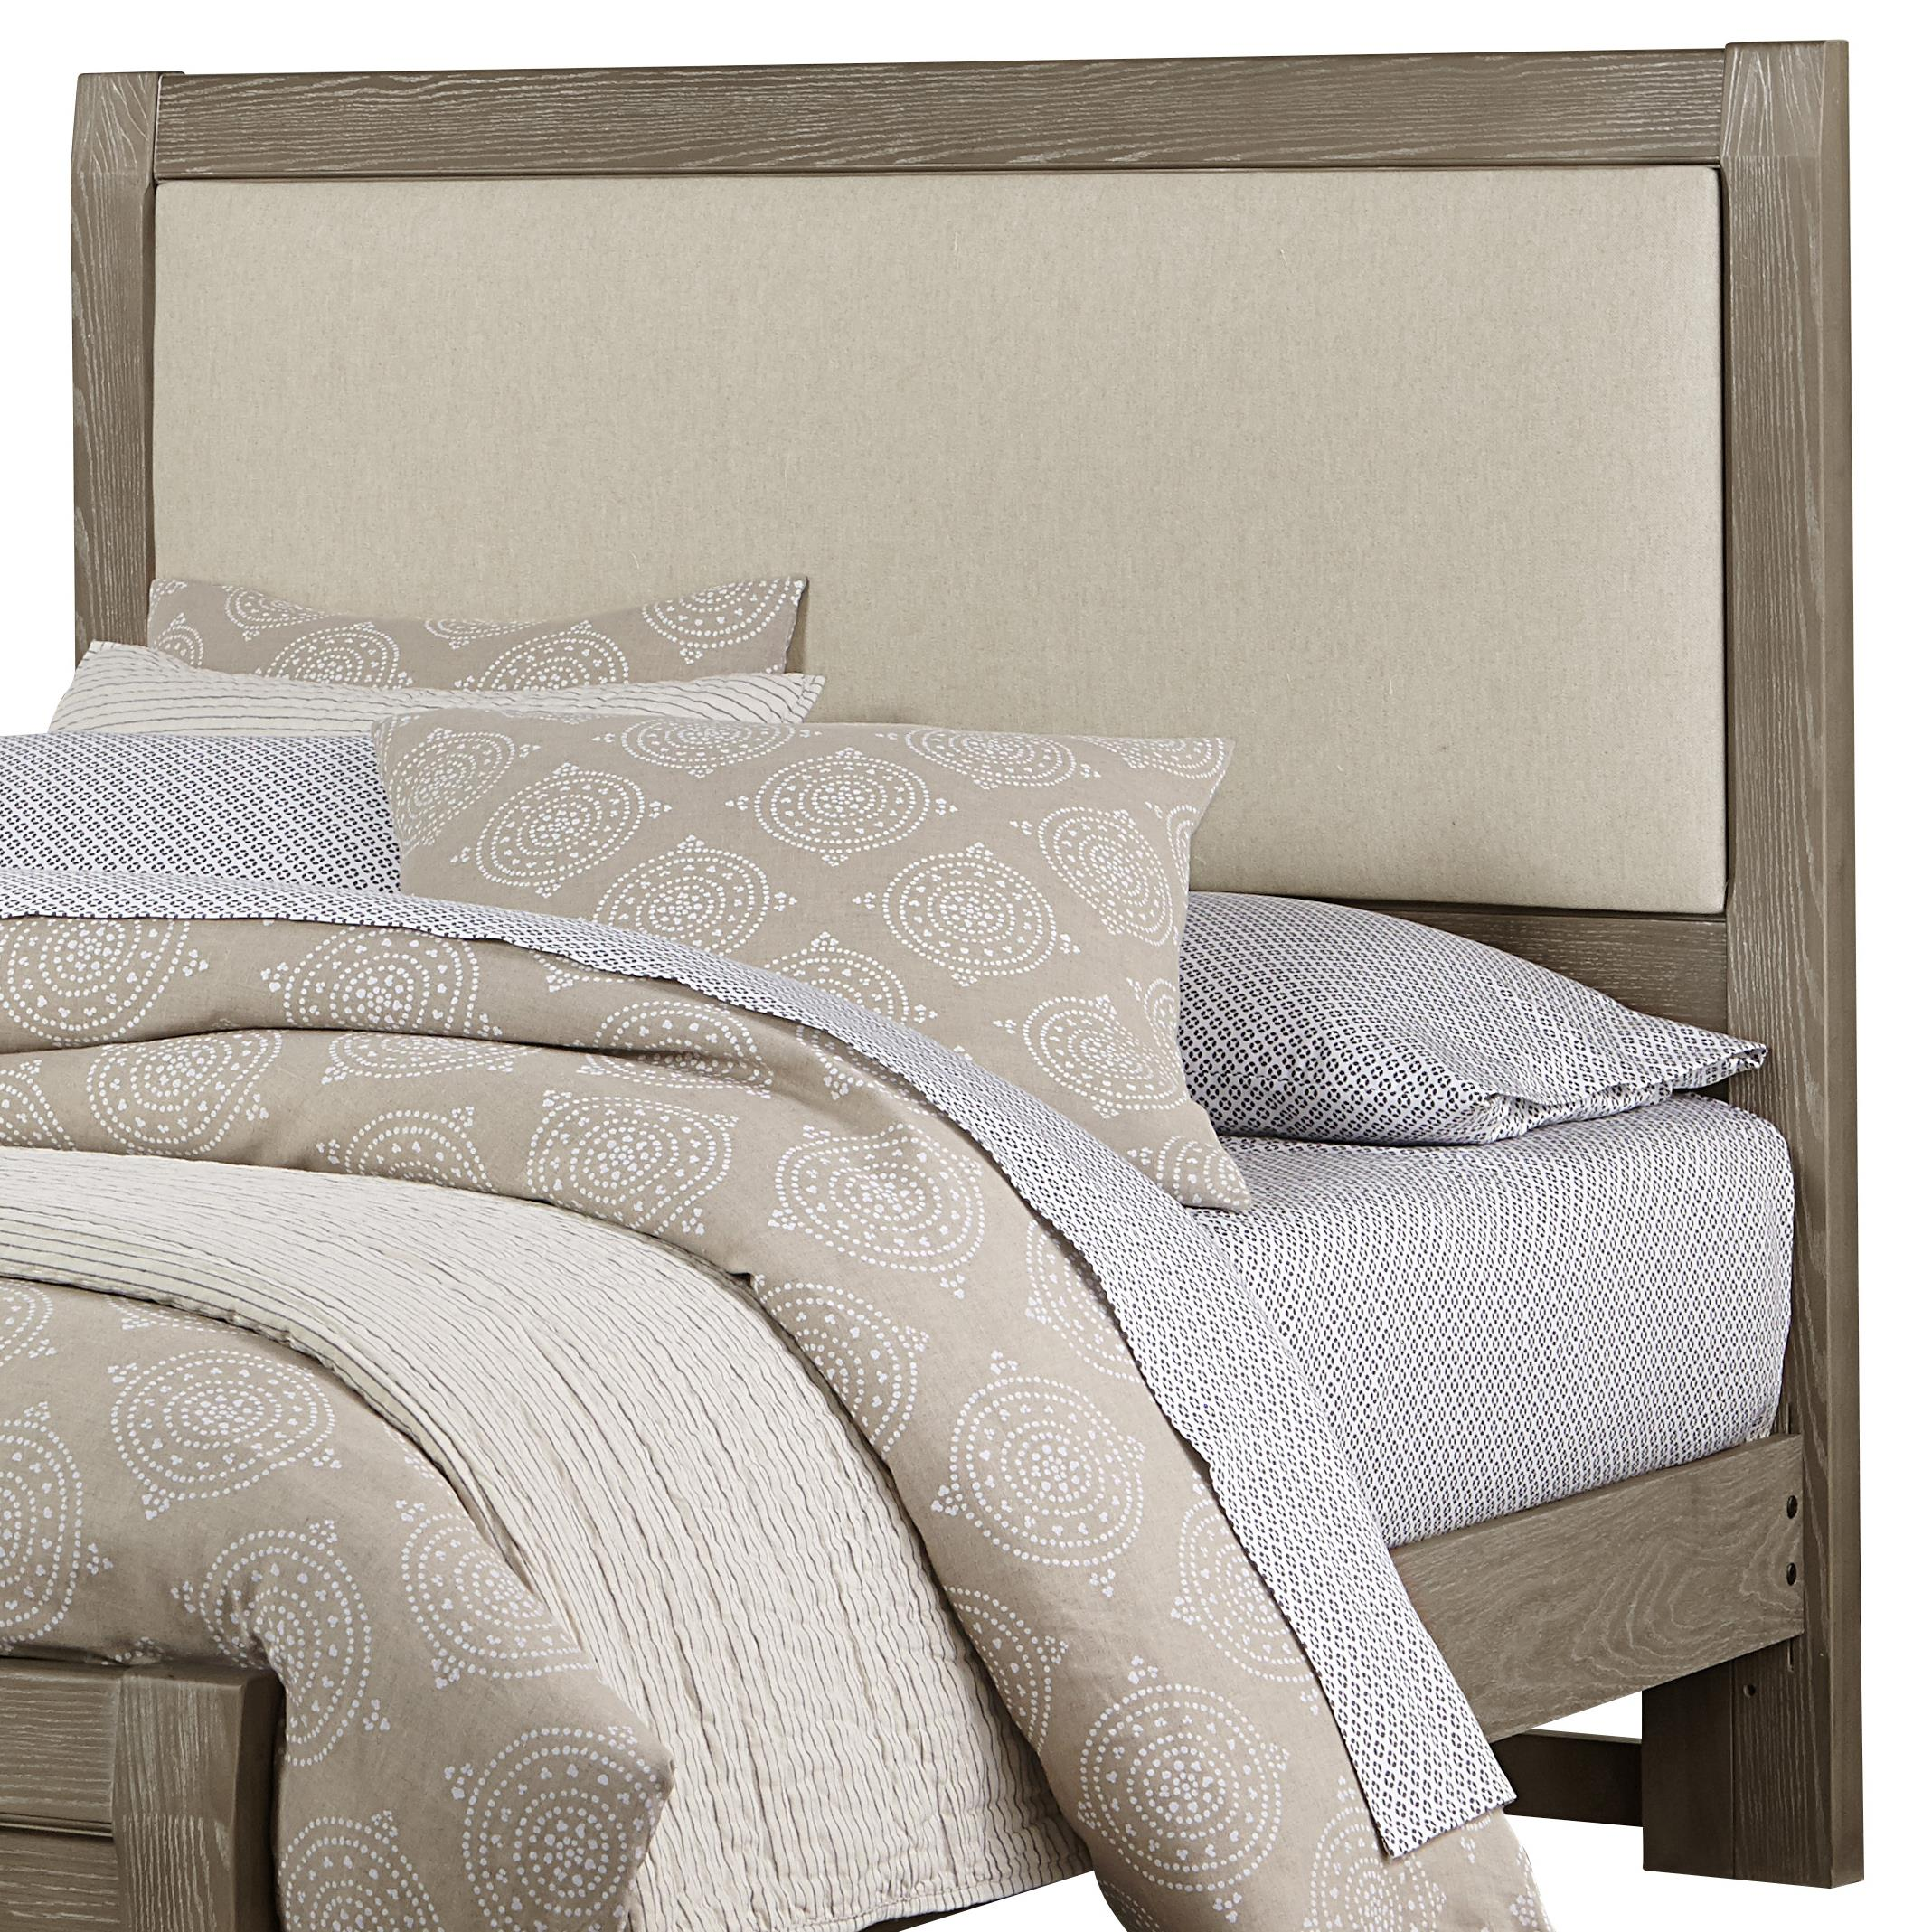 Vaughan Bassett Bedford King Upholstered Headboard, Linen Base Cloth - Item Number: BB81-661